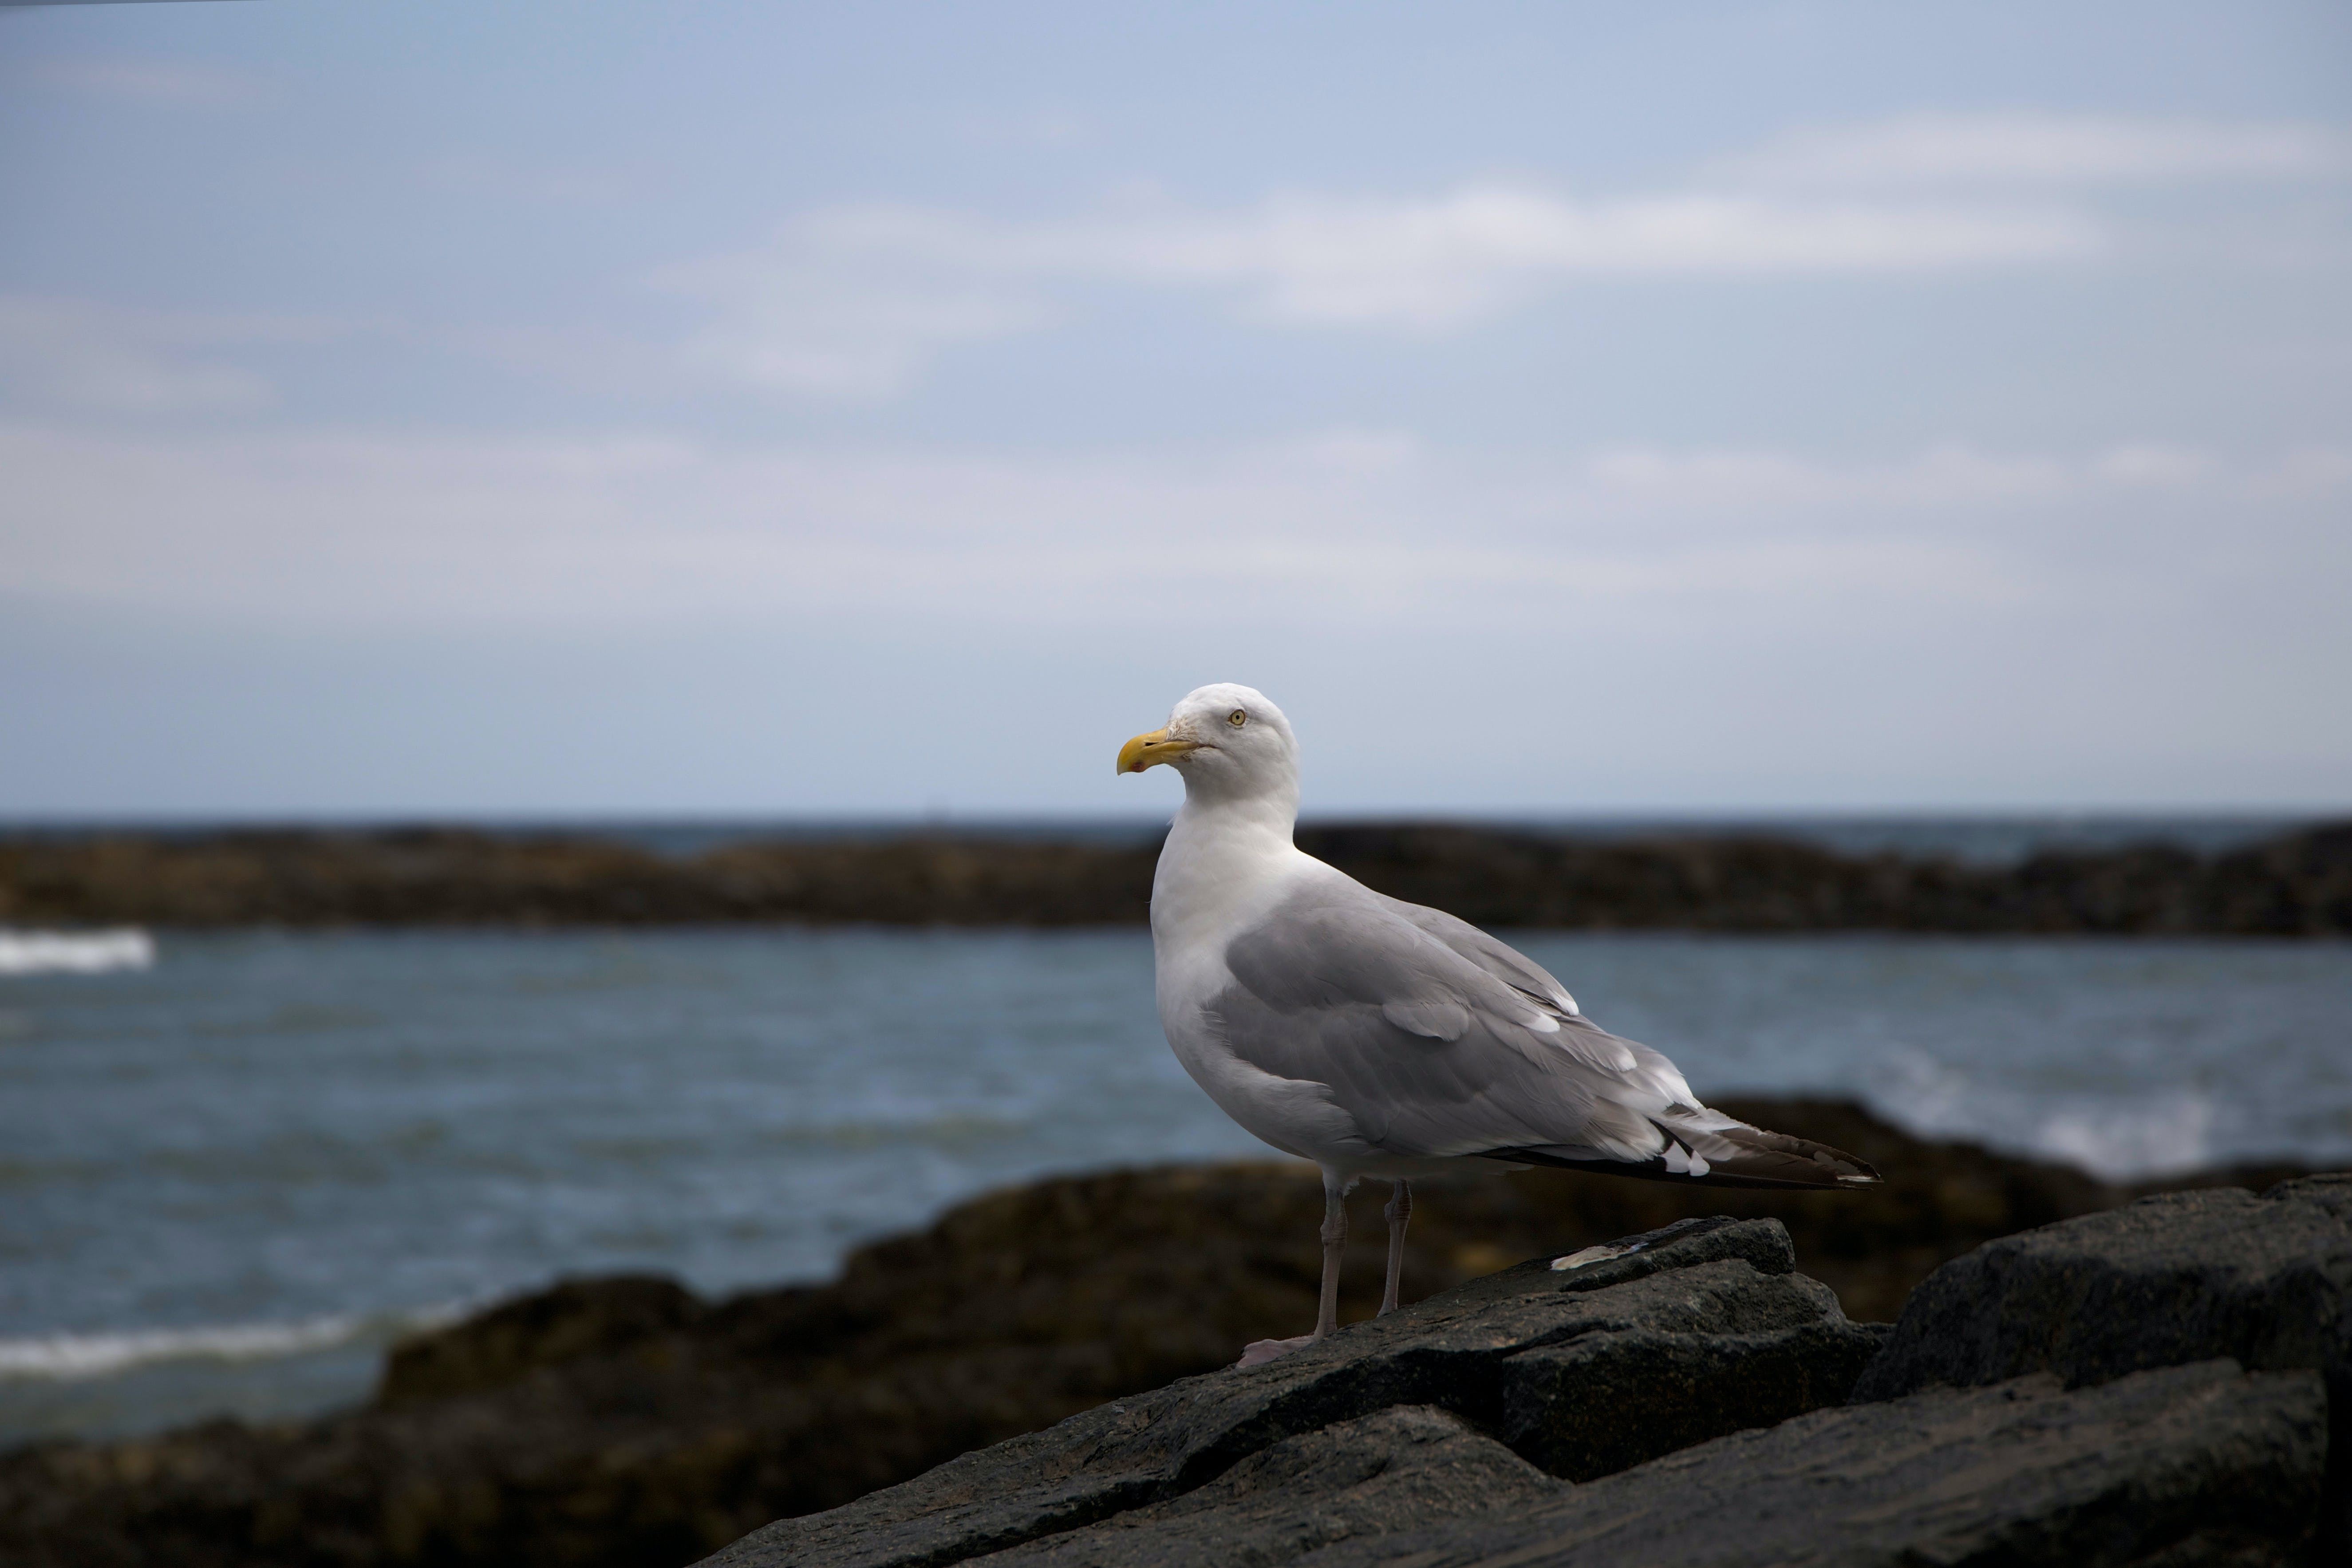 Selective Focus Photography of Ring-billed Gull Standing on Black Rock Formation